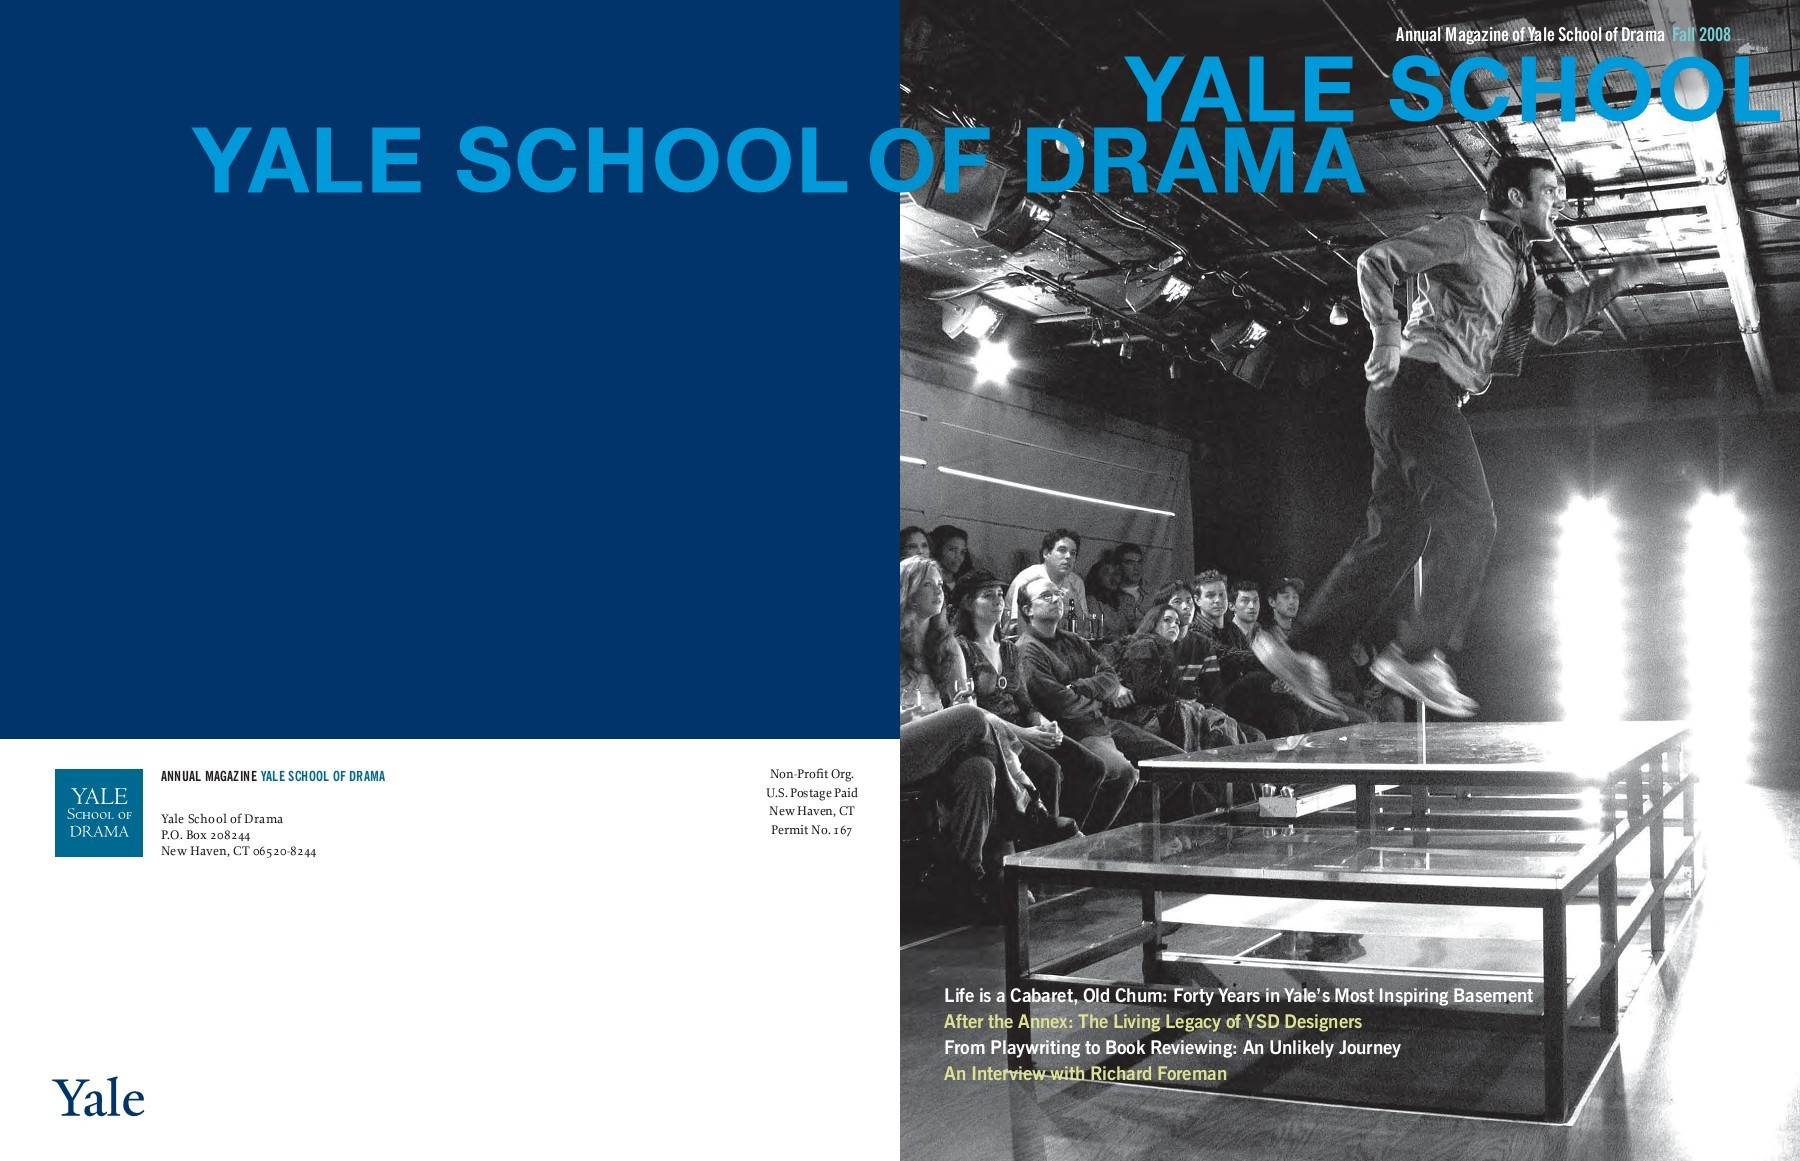 Bett Online Bestellen Warm Fabulous Inspiration Bett Samt Und Annual Magazine Of Yale School Of Drama Fall 2008 Yale Pages 1